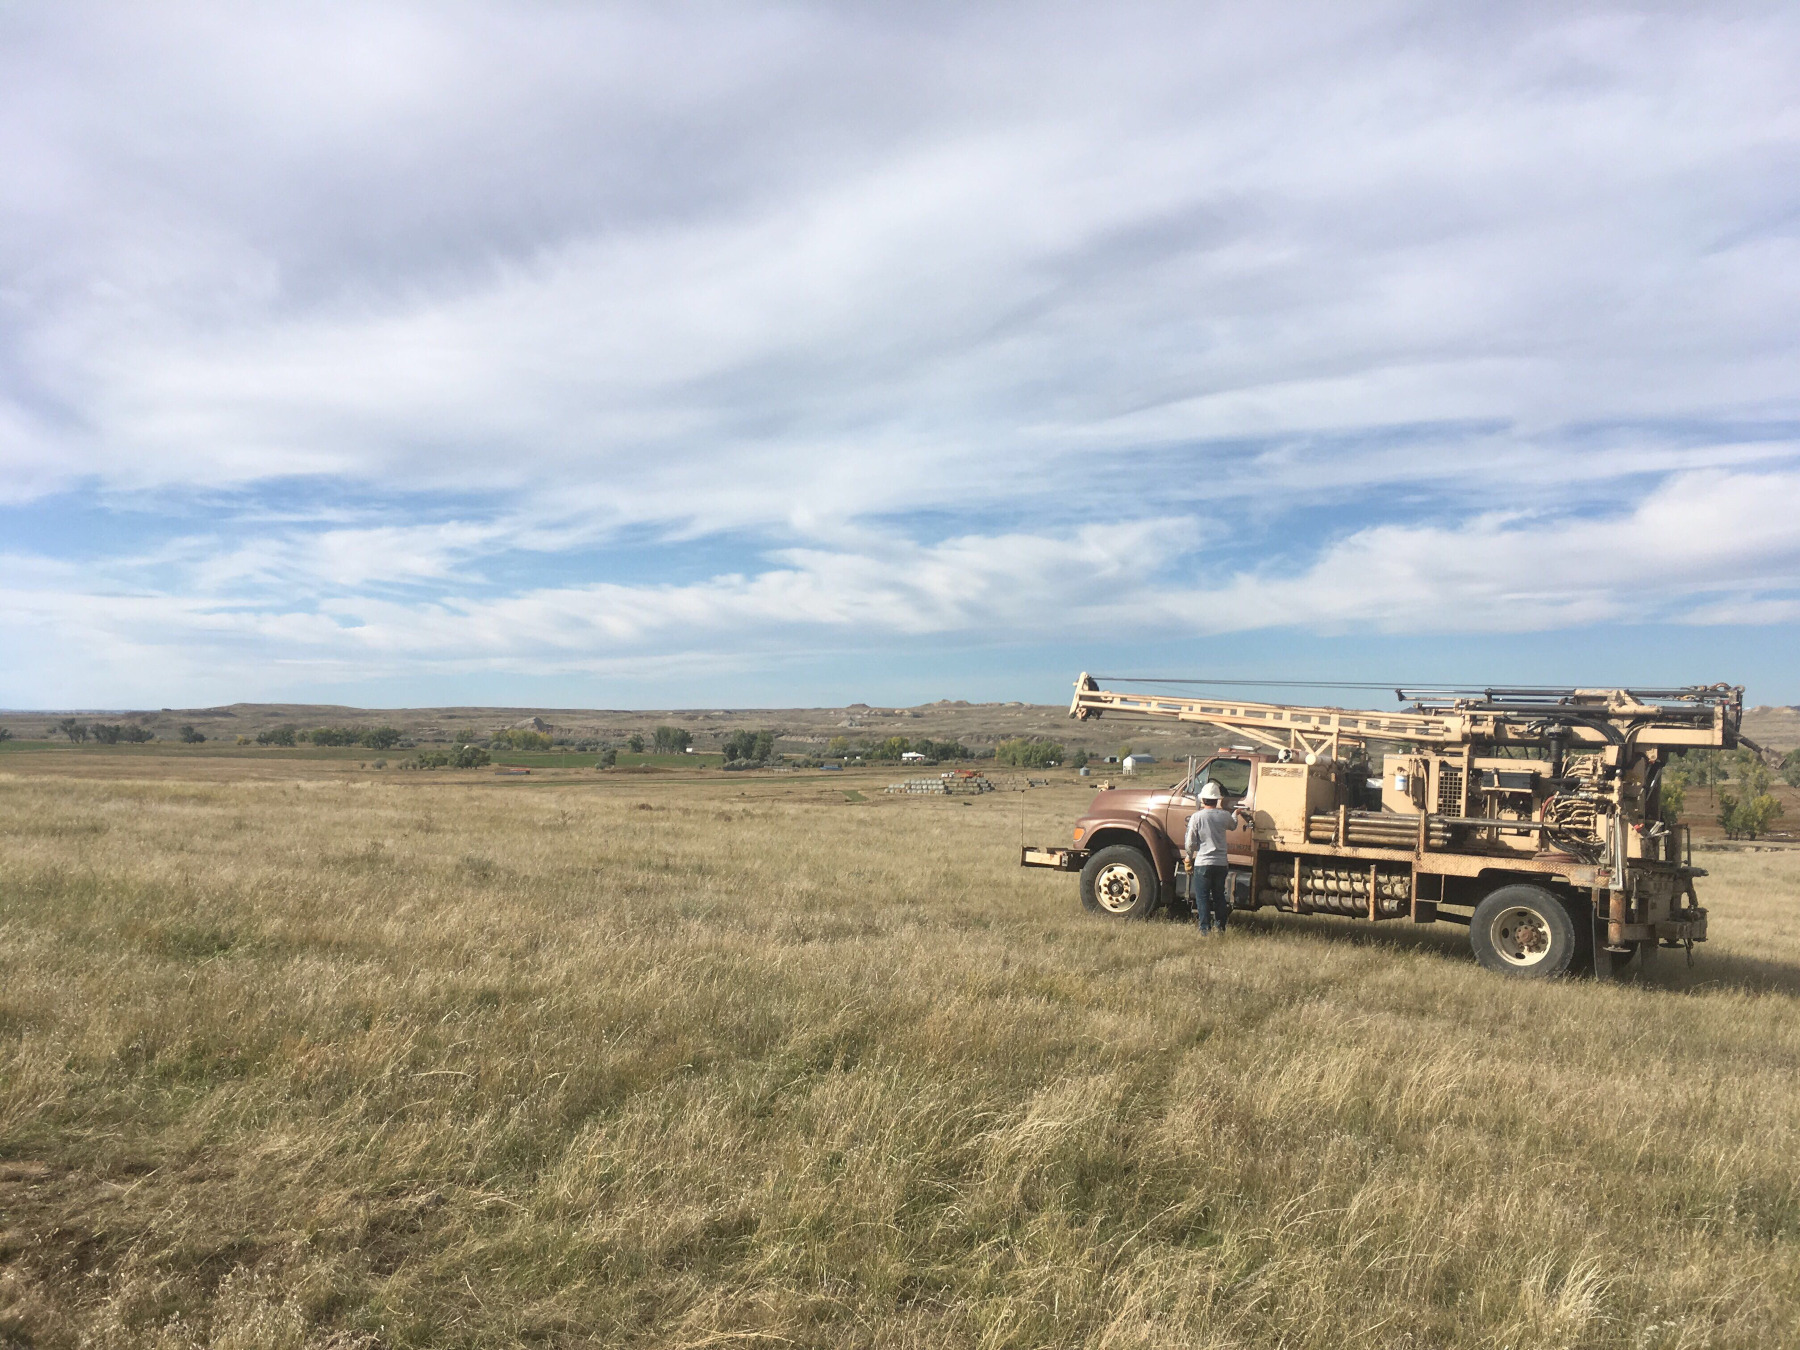 SK Geotechnical on Junction 462 project east of Jordan, Montana with CME75HT Drillrig